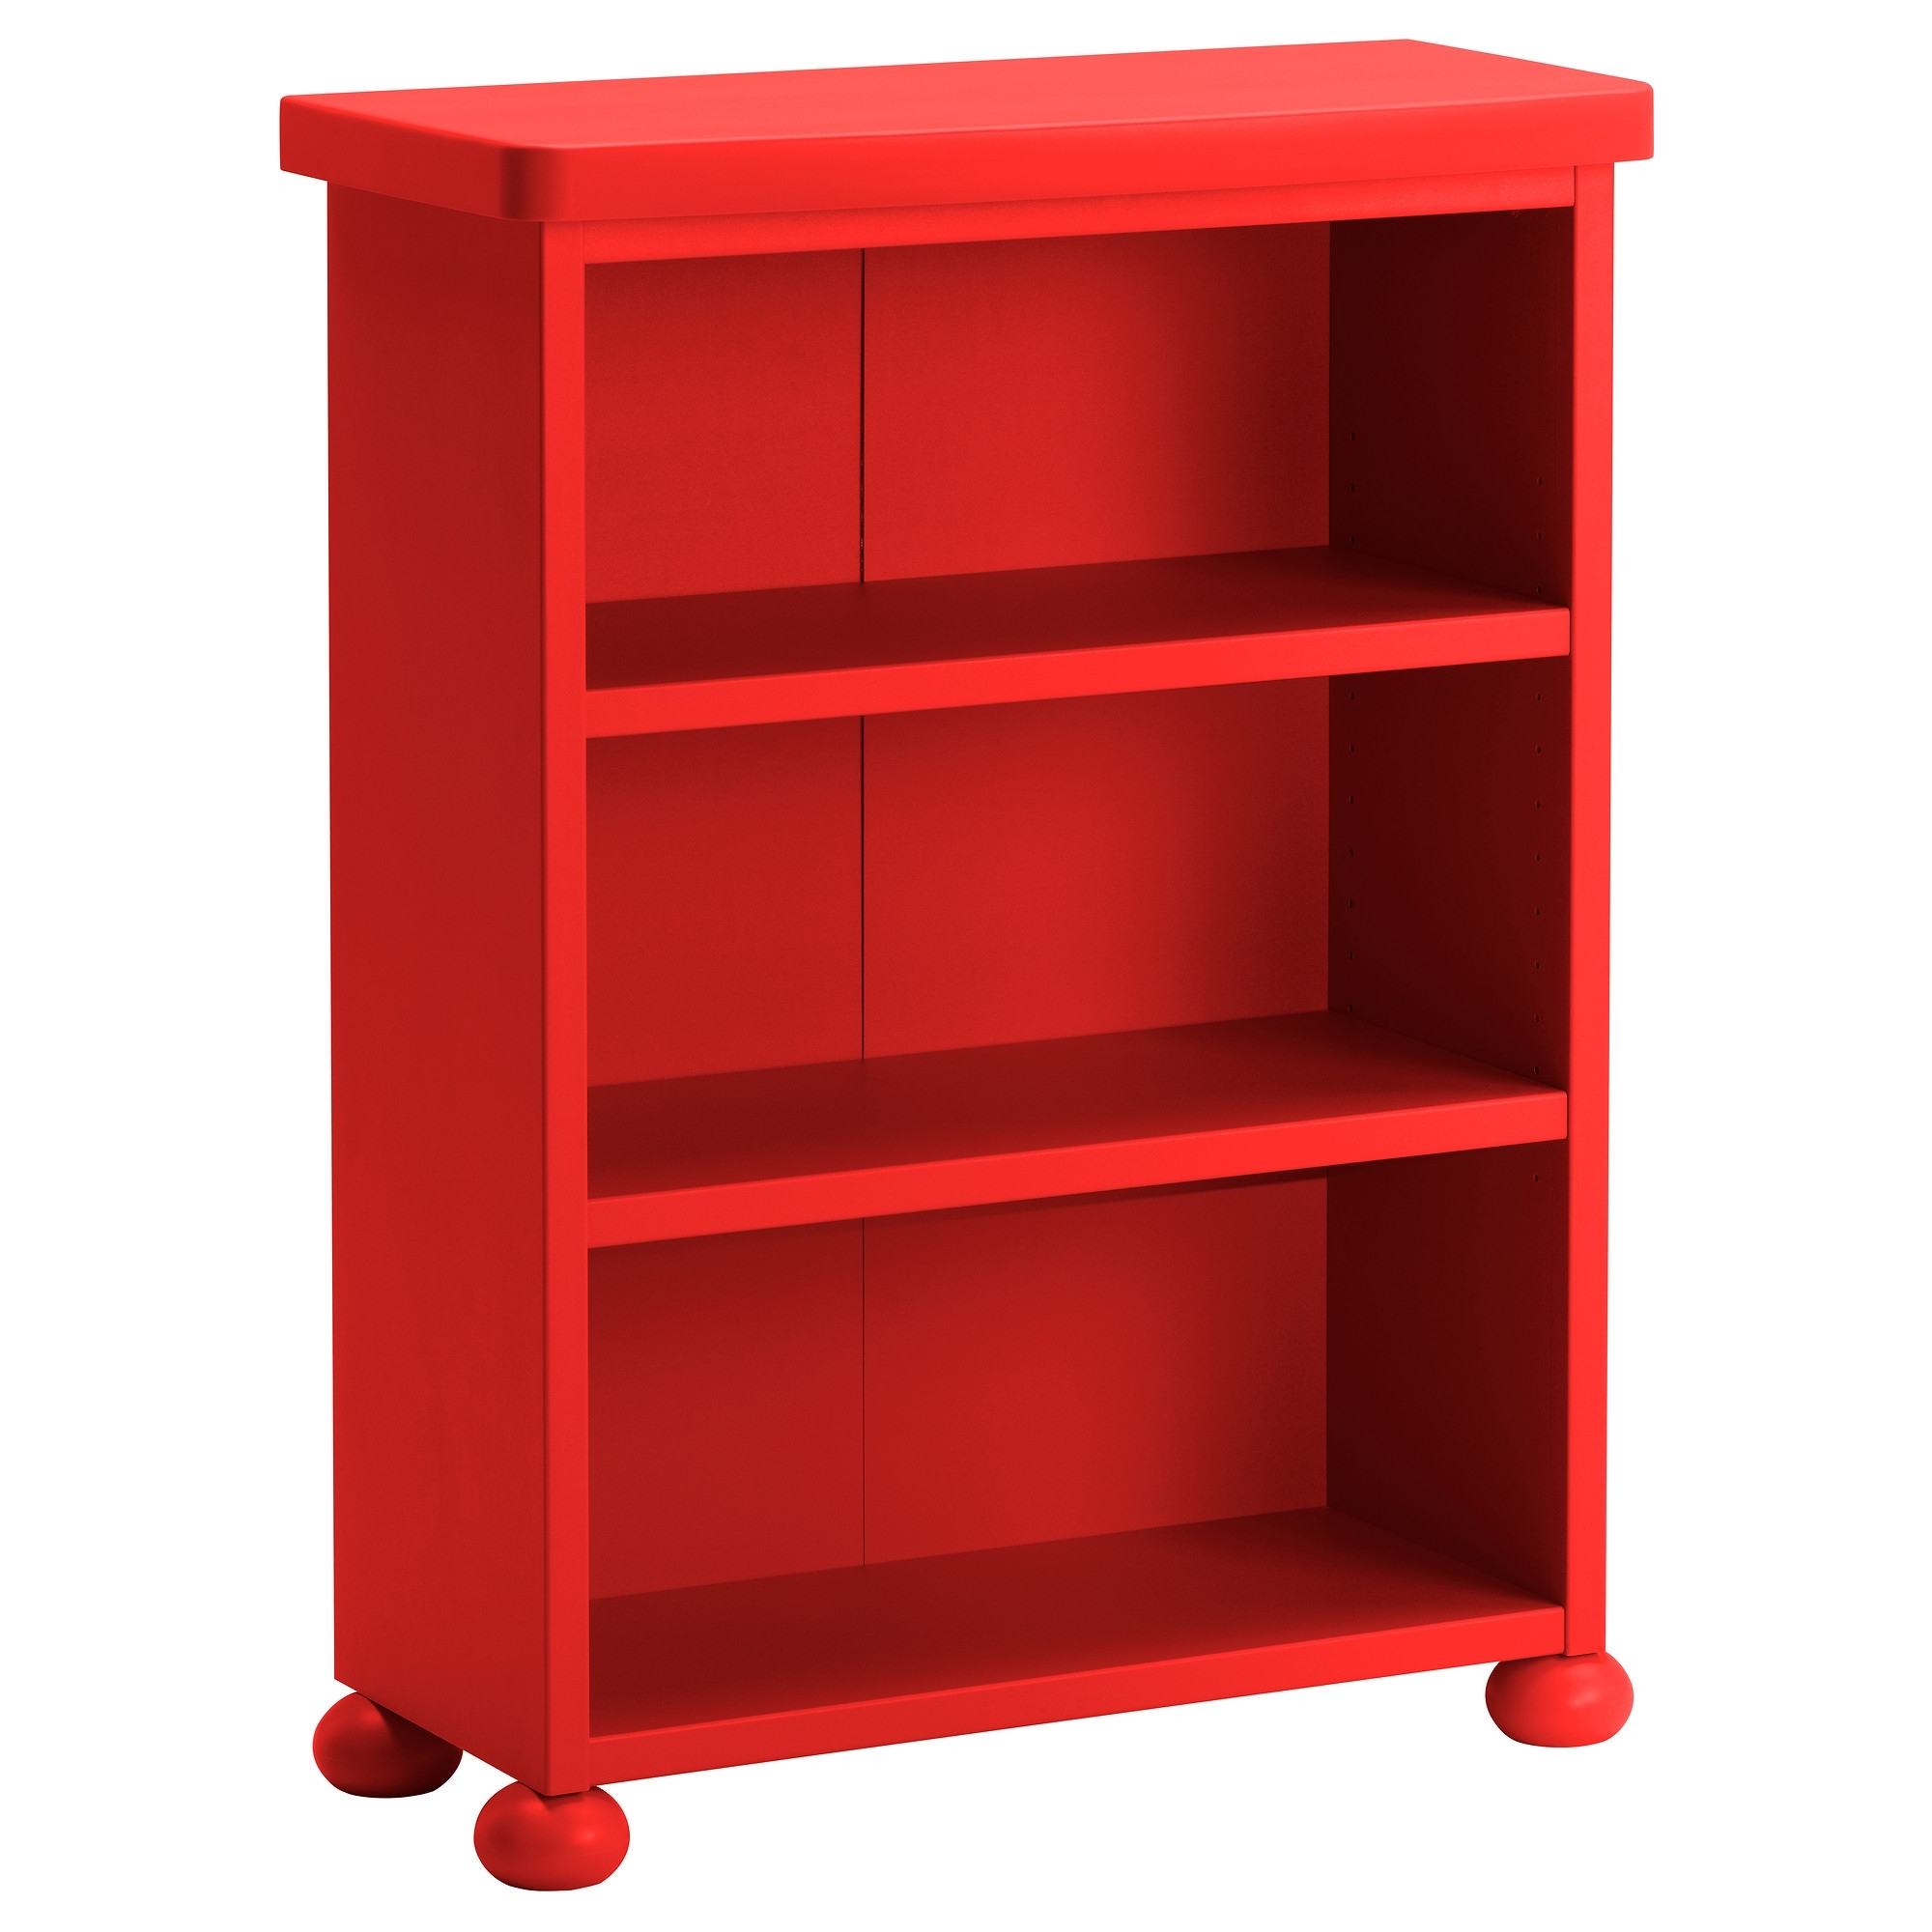 Most Recent Furniture Home: Fresh Ikea Red Bookcase On Shelf Bookcases With With Regard To Red Bookcases (View 3 of 15)